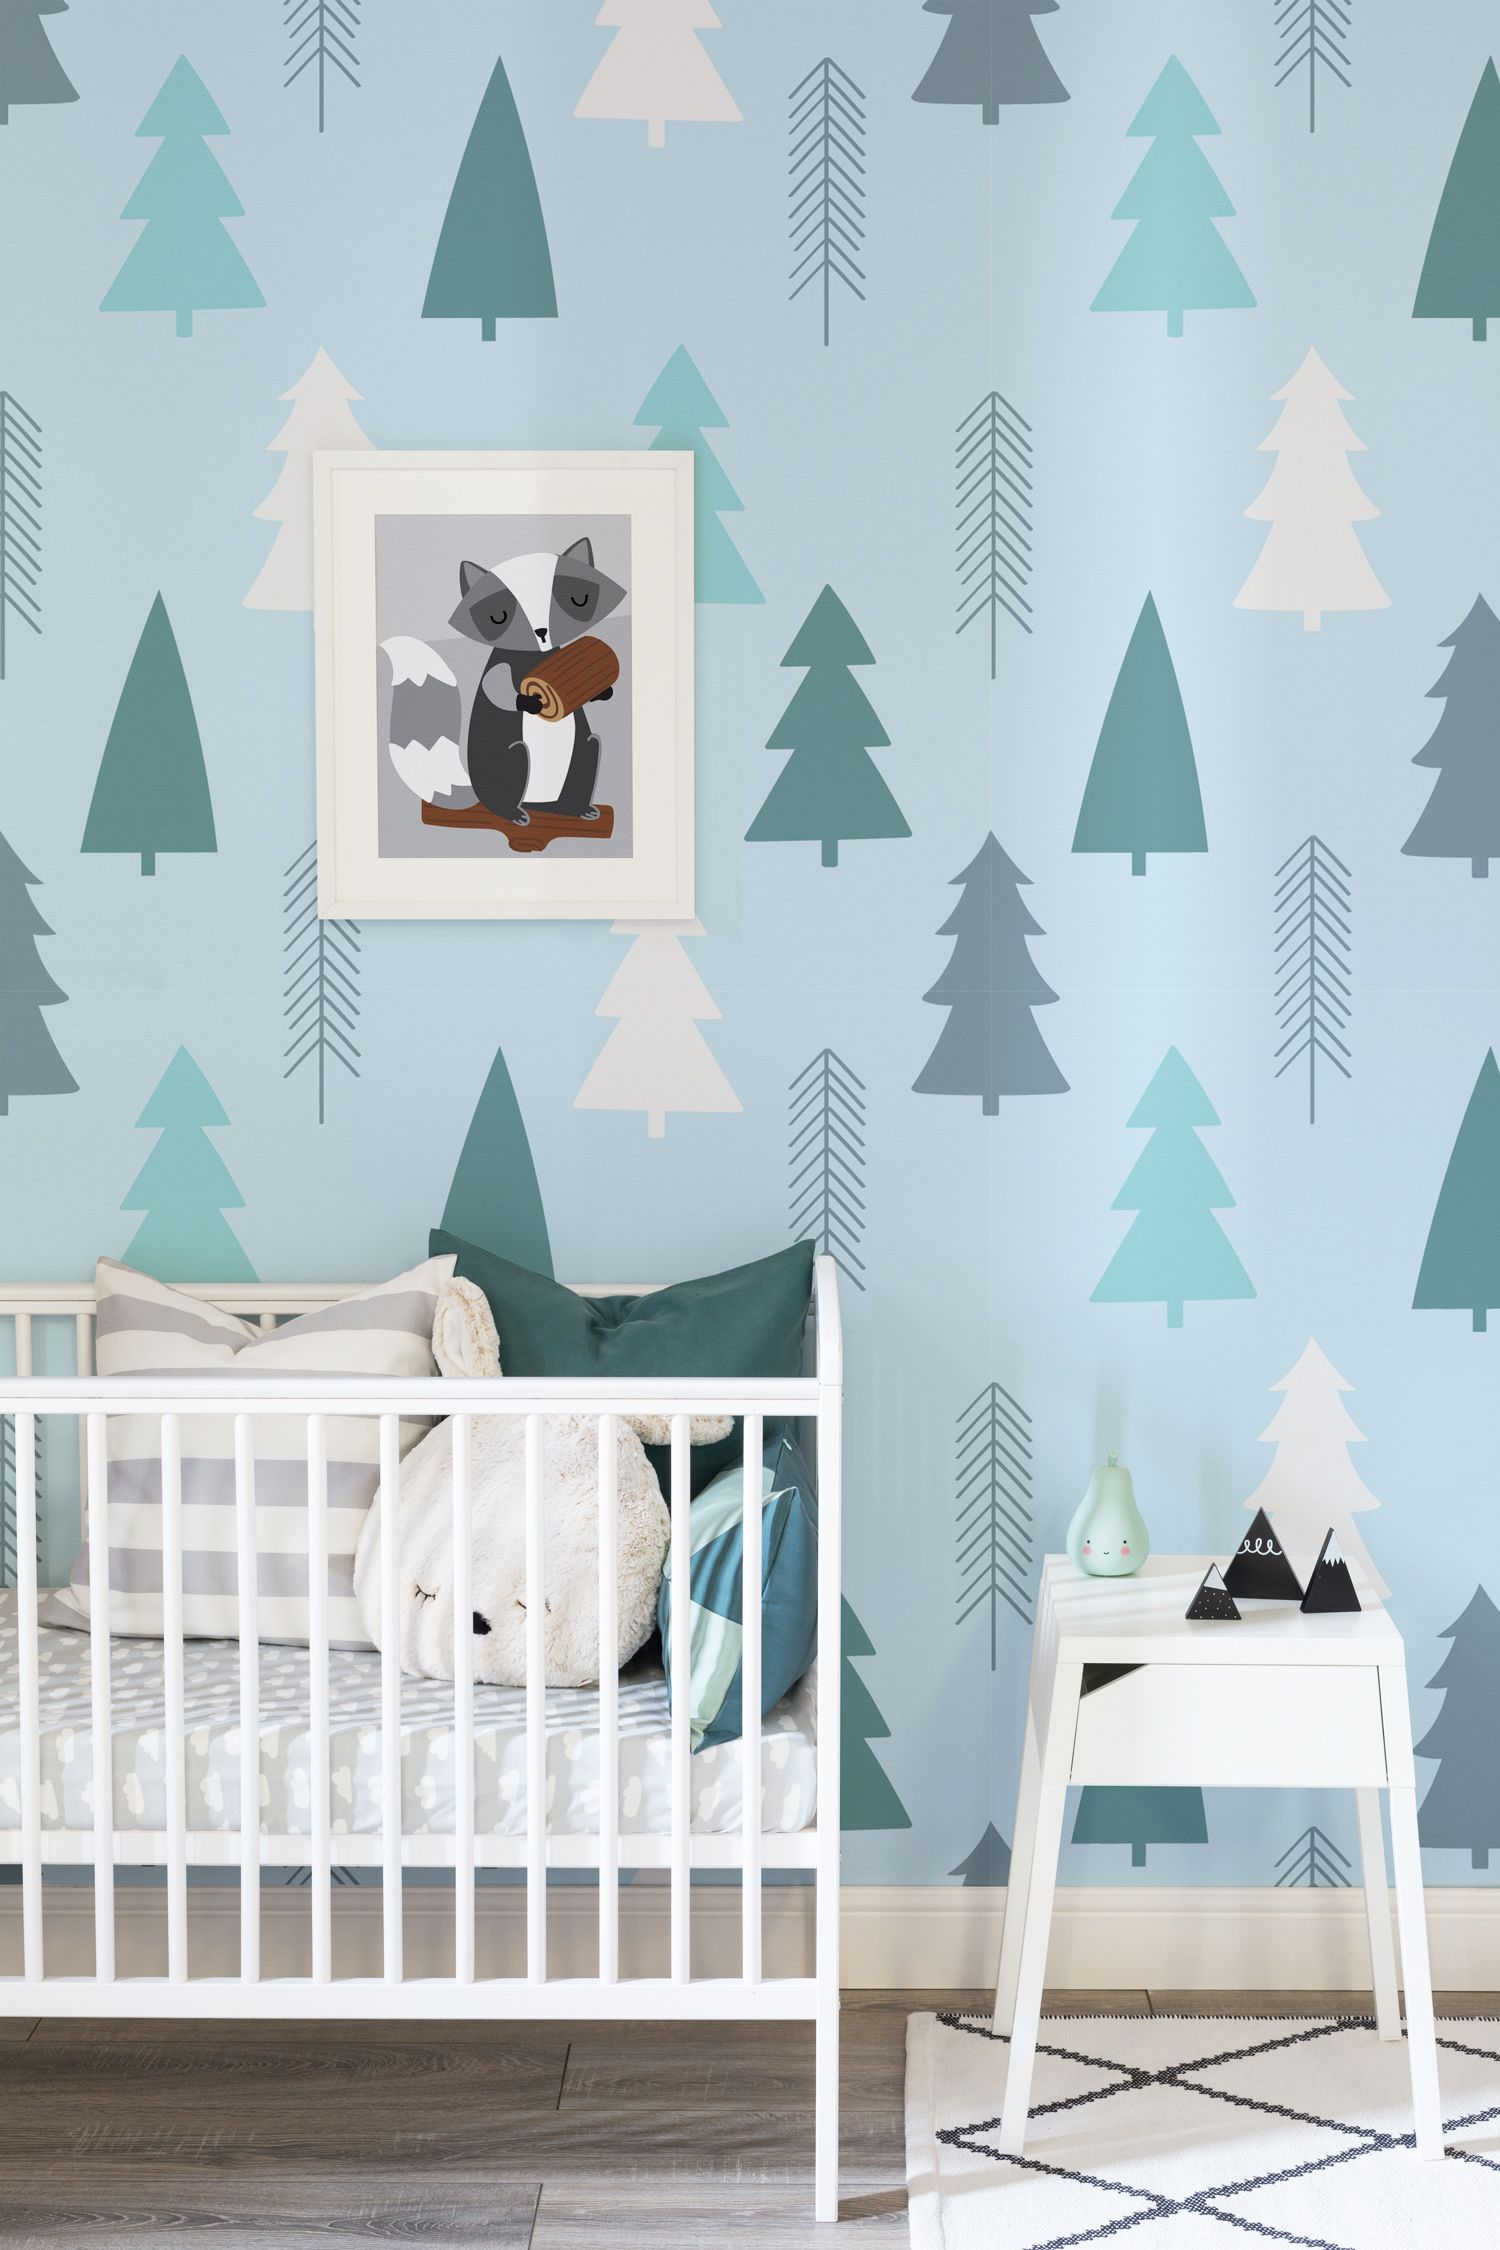 Download Wallpaper Mountain Bedroom - 7248cc6c228c2f4d539fefd4208b5a9d  Trends_982131.jpg